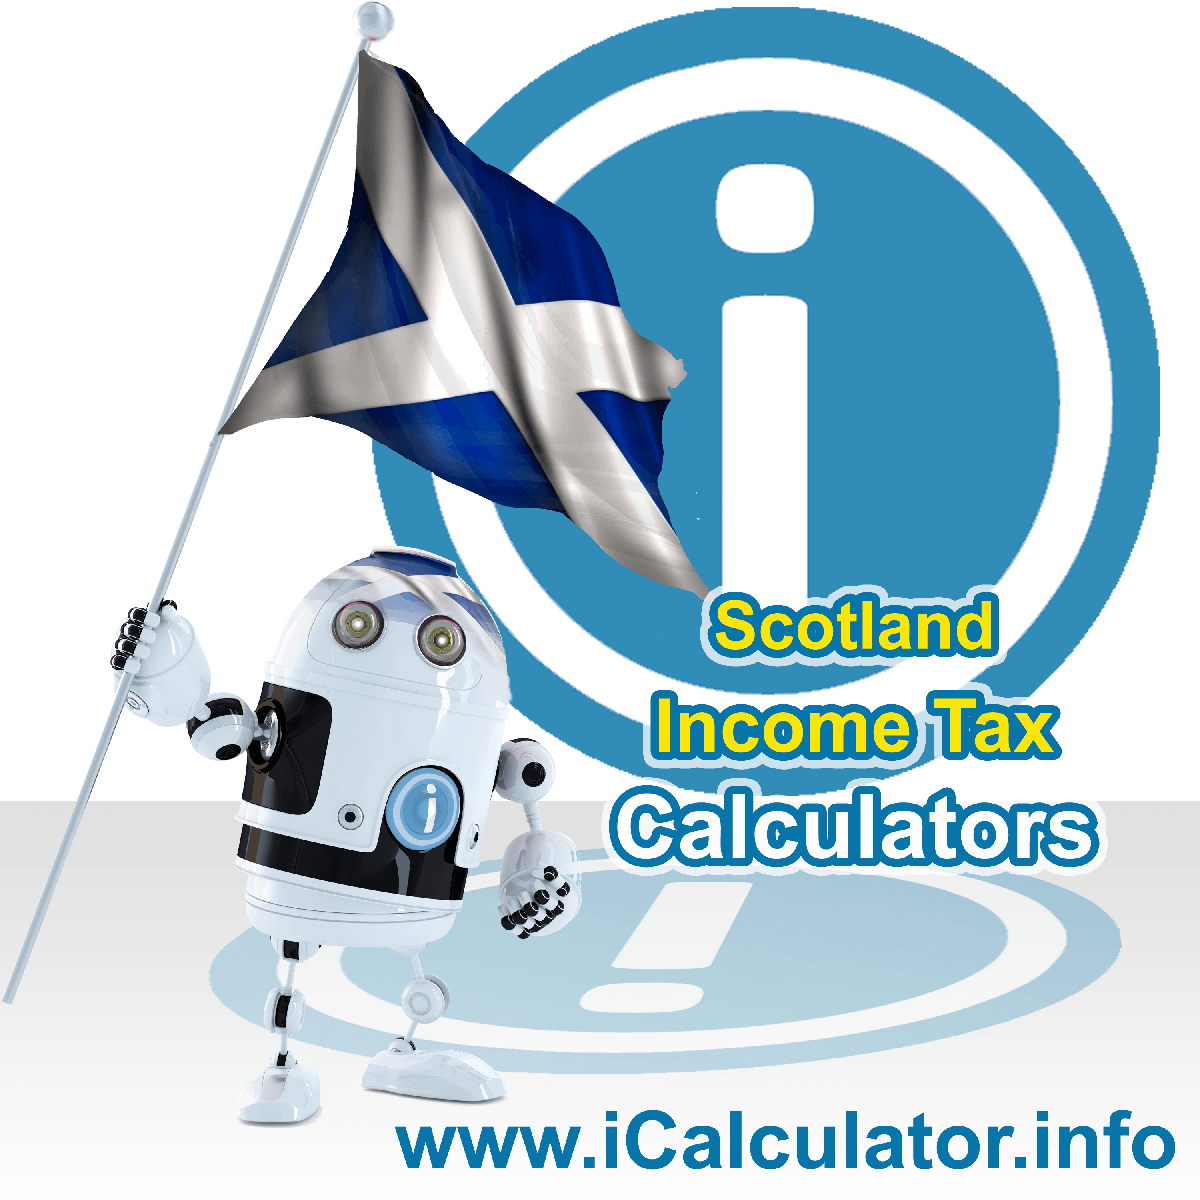 Scotland Income Tax Calculator. This image shows a new employer in Scotland calculating the annual payroll costs based on multiple payroll payments in one year in Scotland using the Scotland income tax calculator to understand their payroll costs in Scotland in 2020